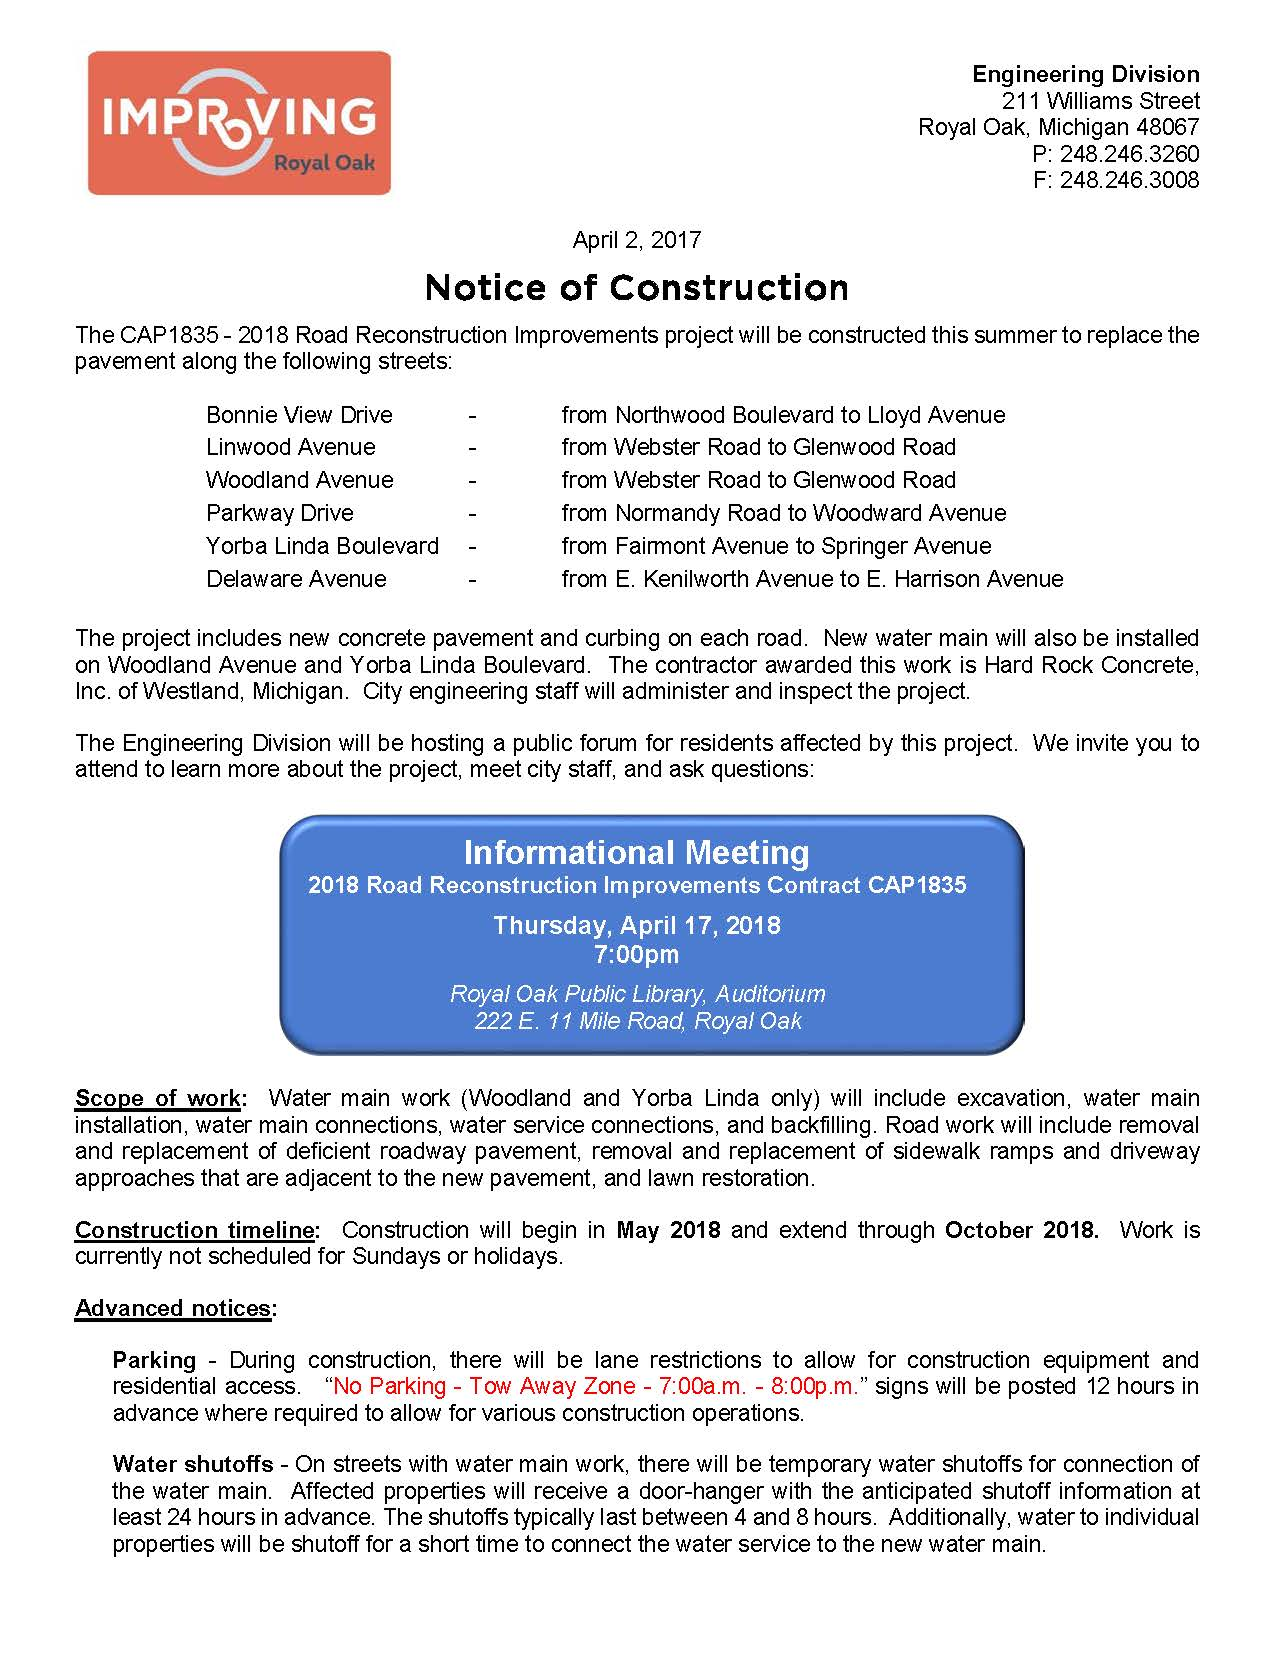 Notice of Construction - CAP1835 JC_Page_1